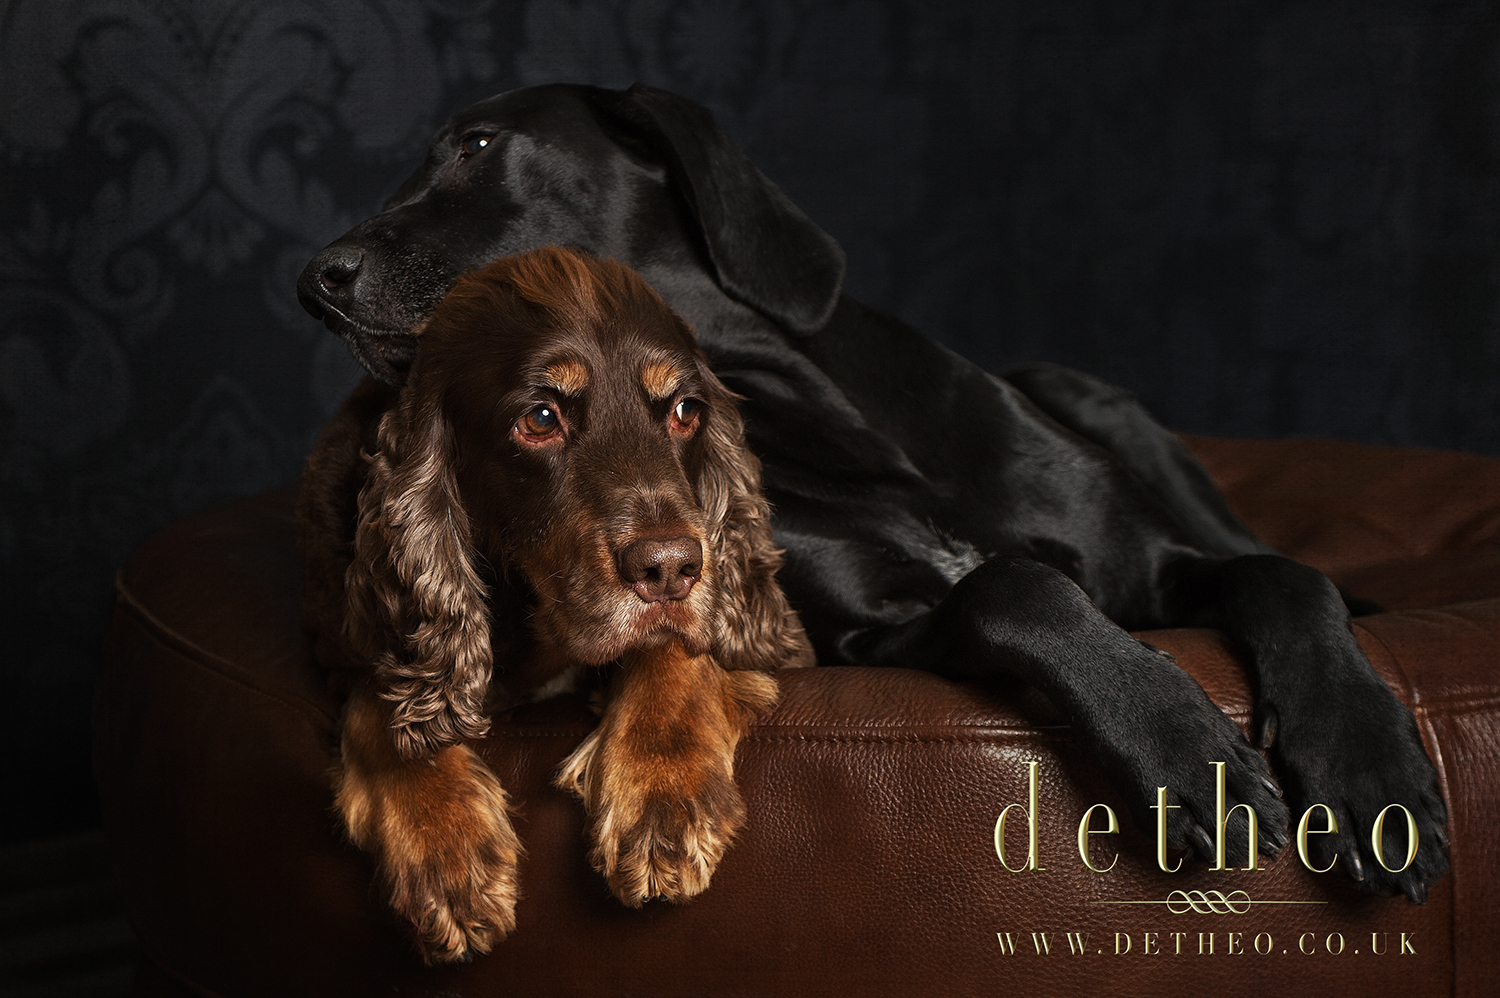 Specialist Pet photography photoshoot for dogs Samson & Sadie. Captured by Pet photographer, Detheo Photography